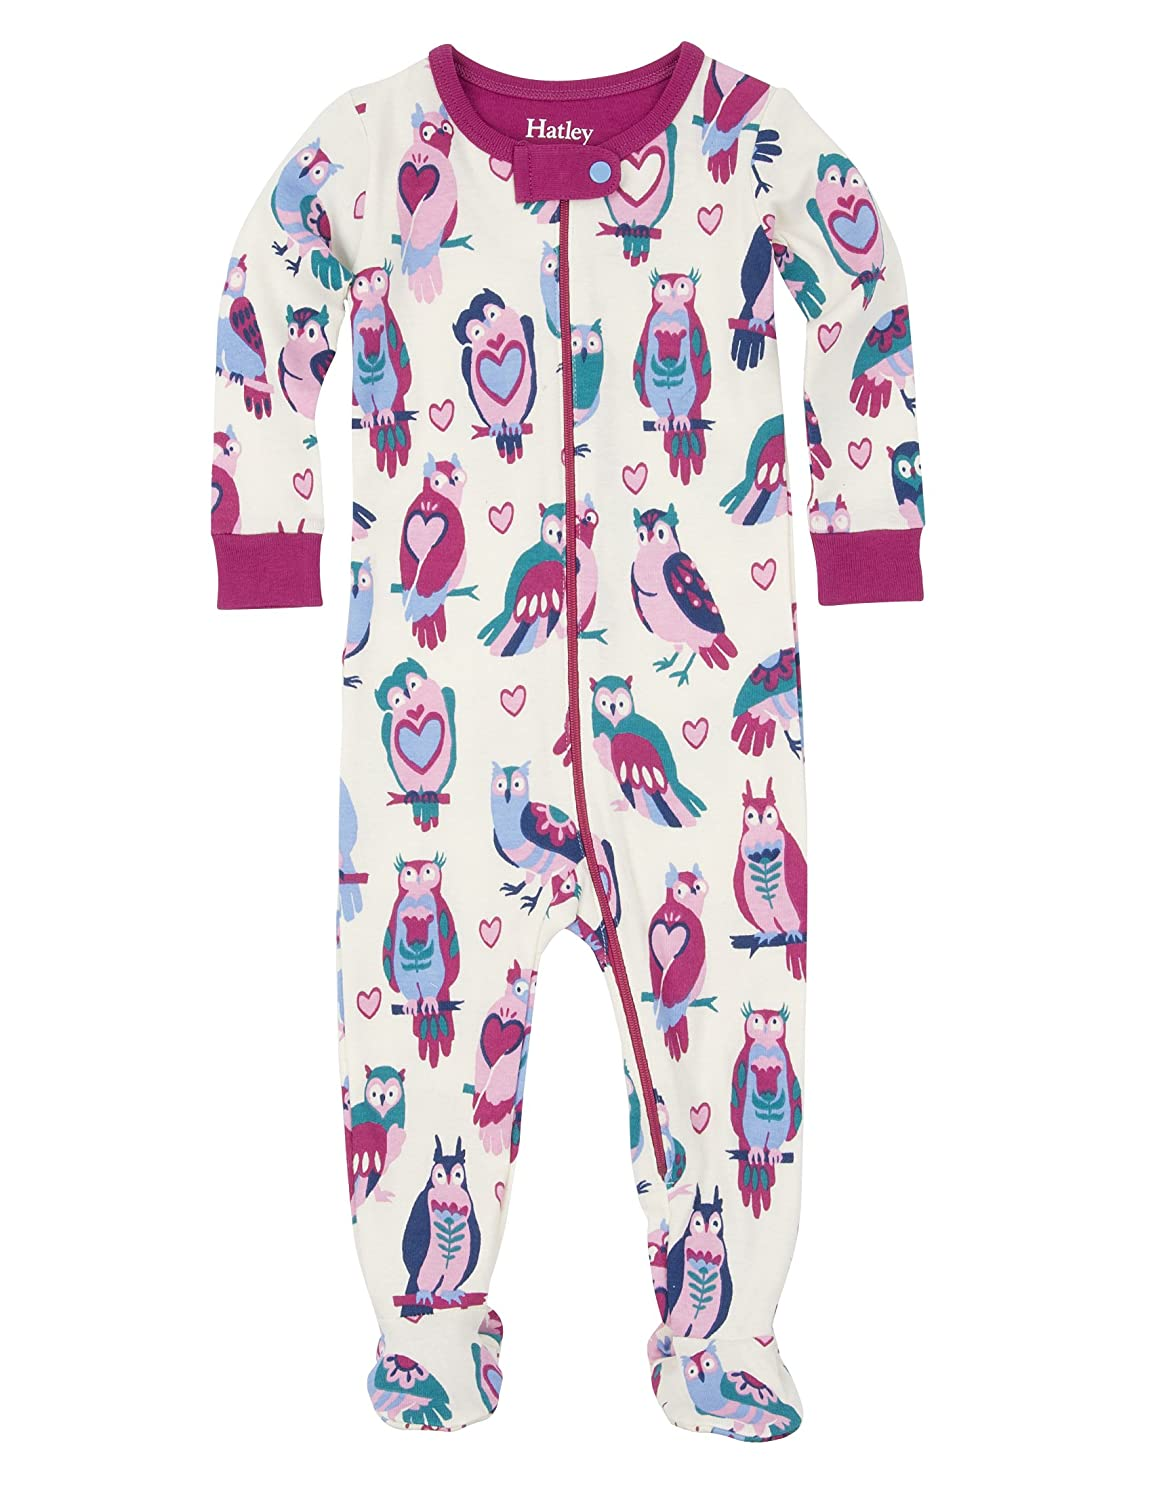 Hatley Girls' Owls Footed Coverall Happy Owls 12-18 Hatley Children's Apparel DR5OWLS126